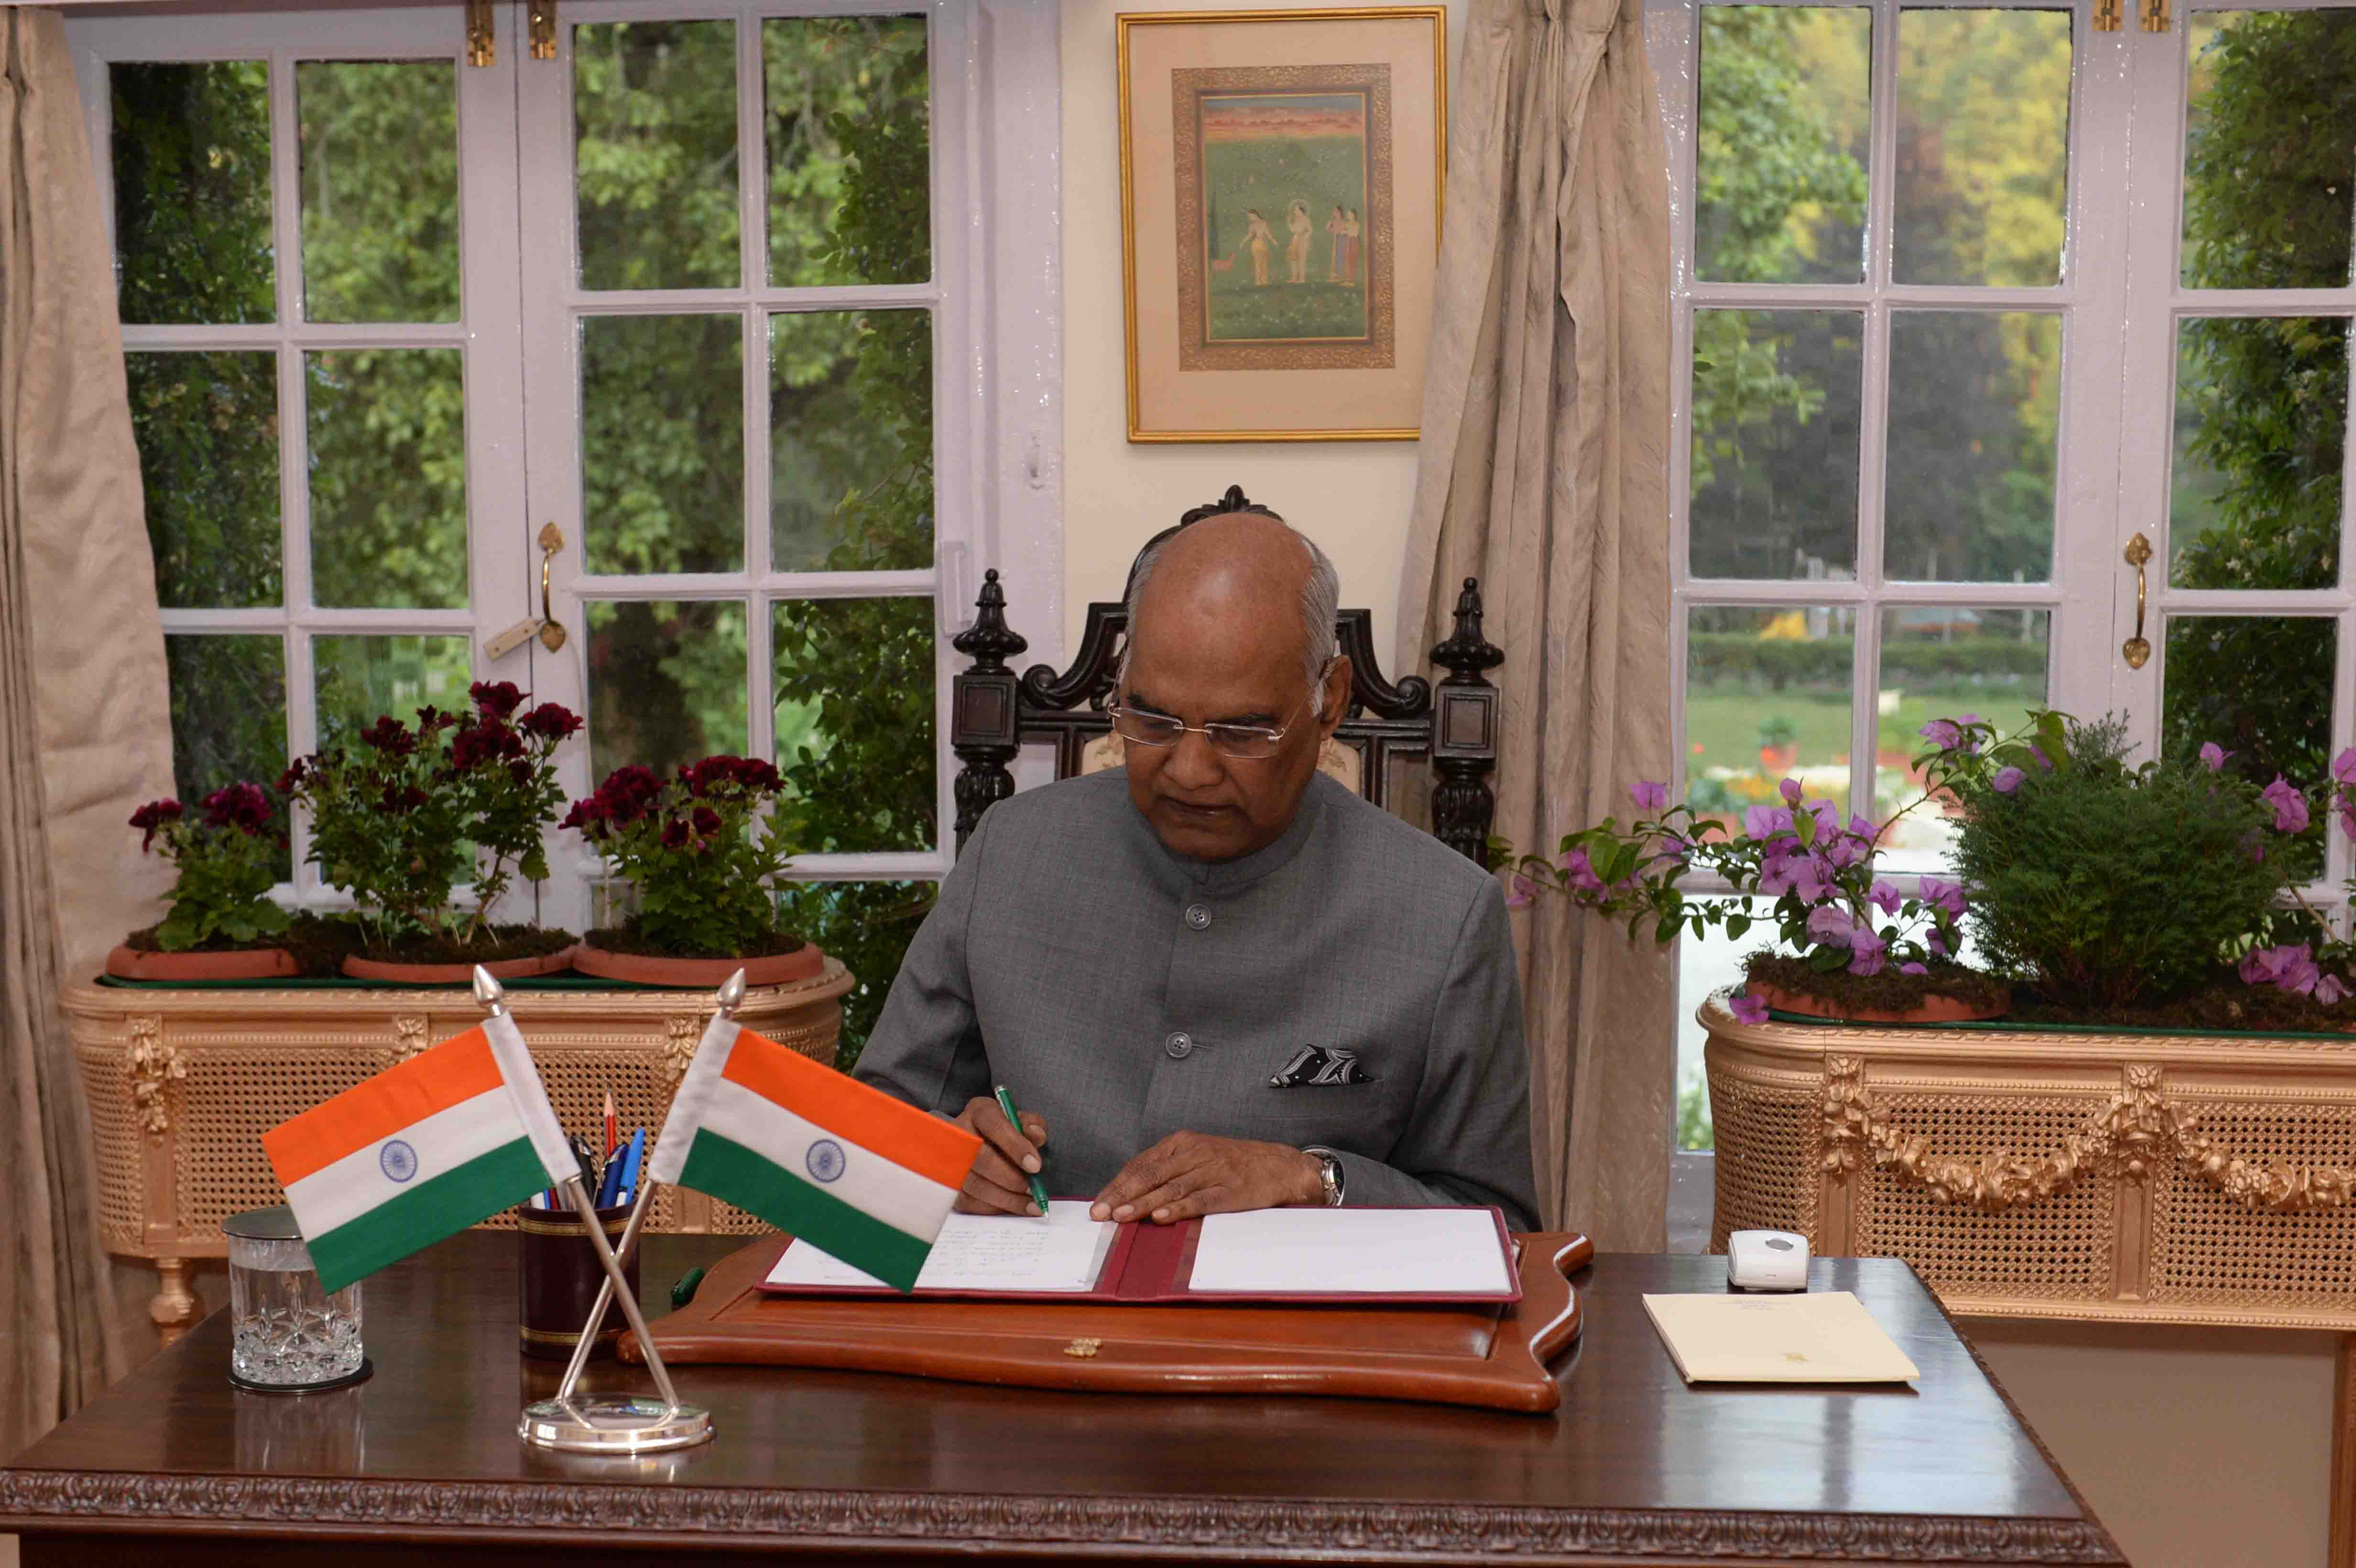 The President of India - Shri Ram Nath Kovind